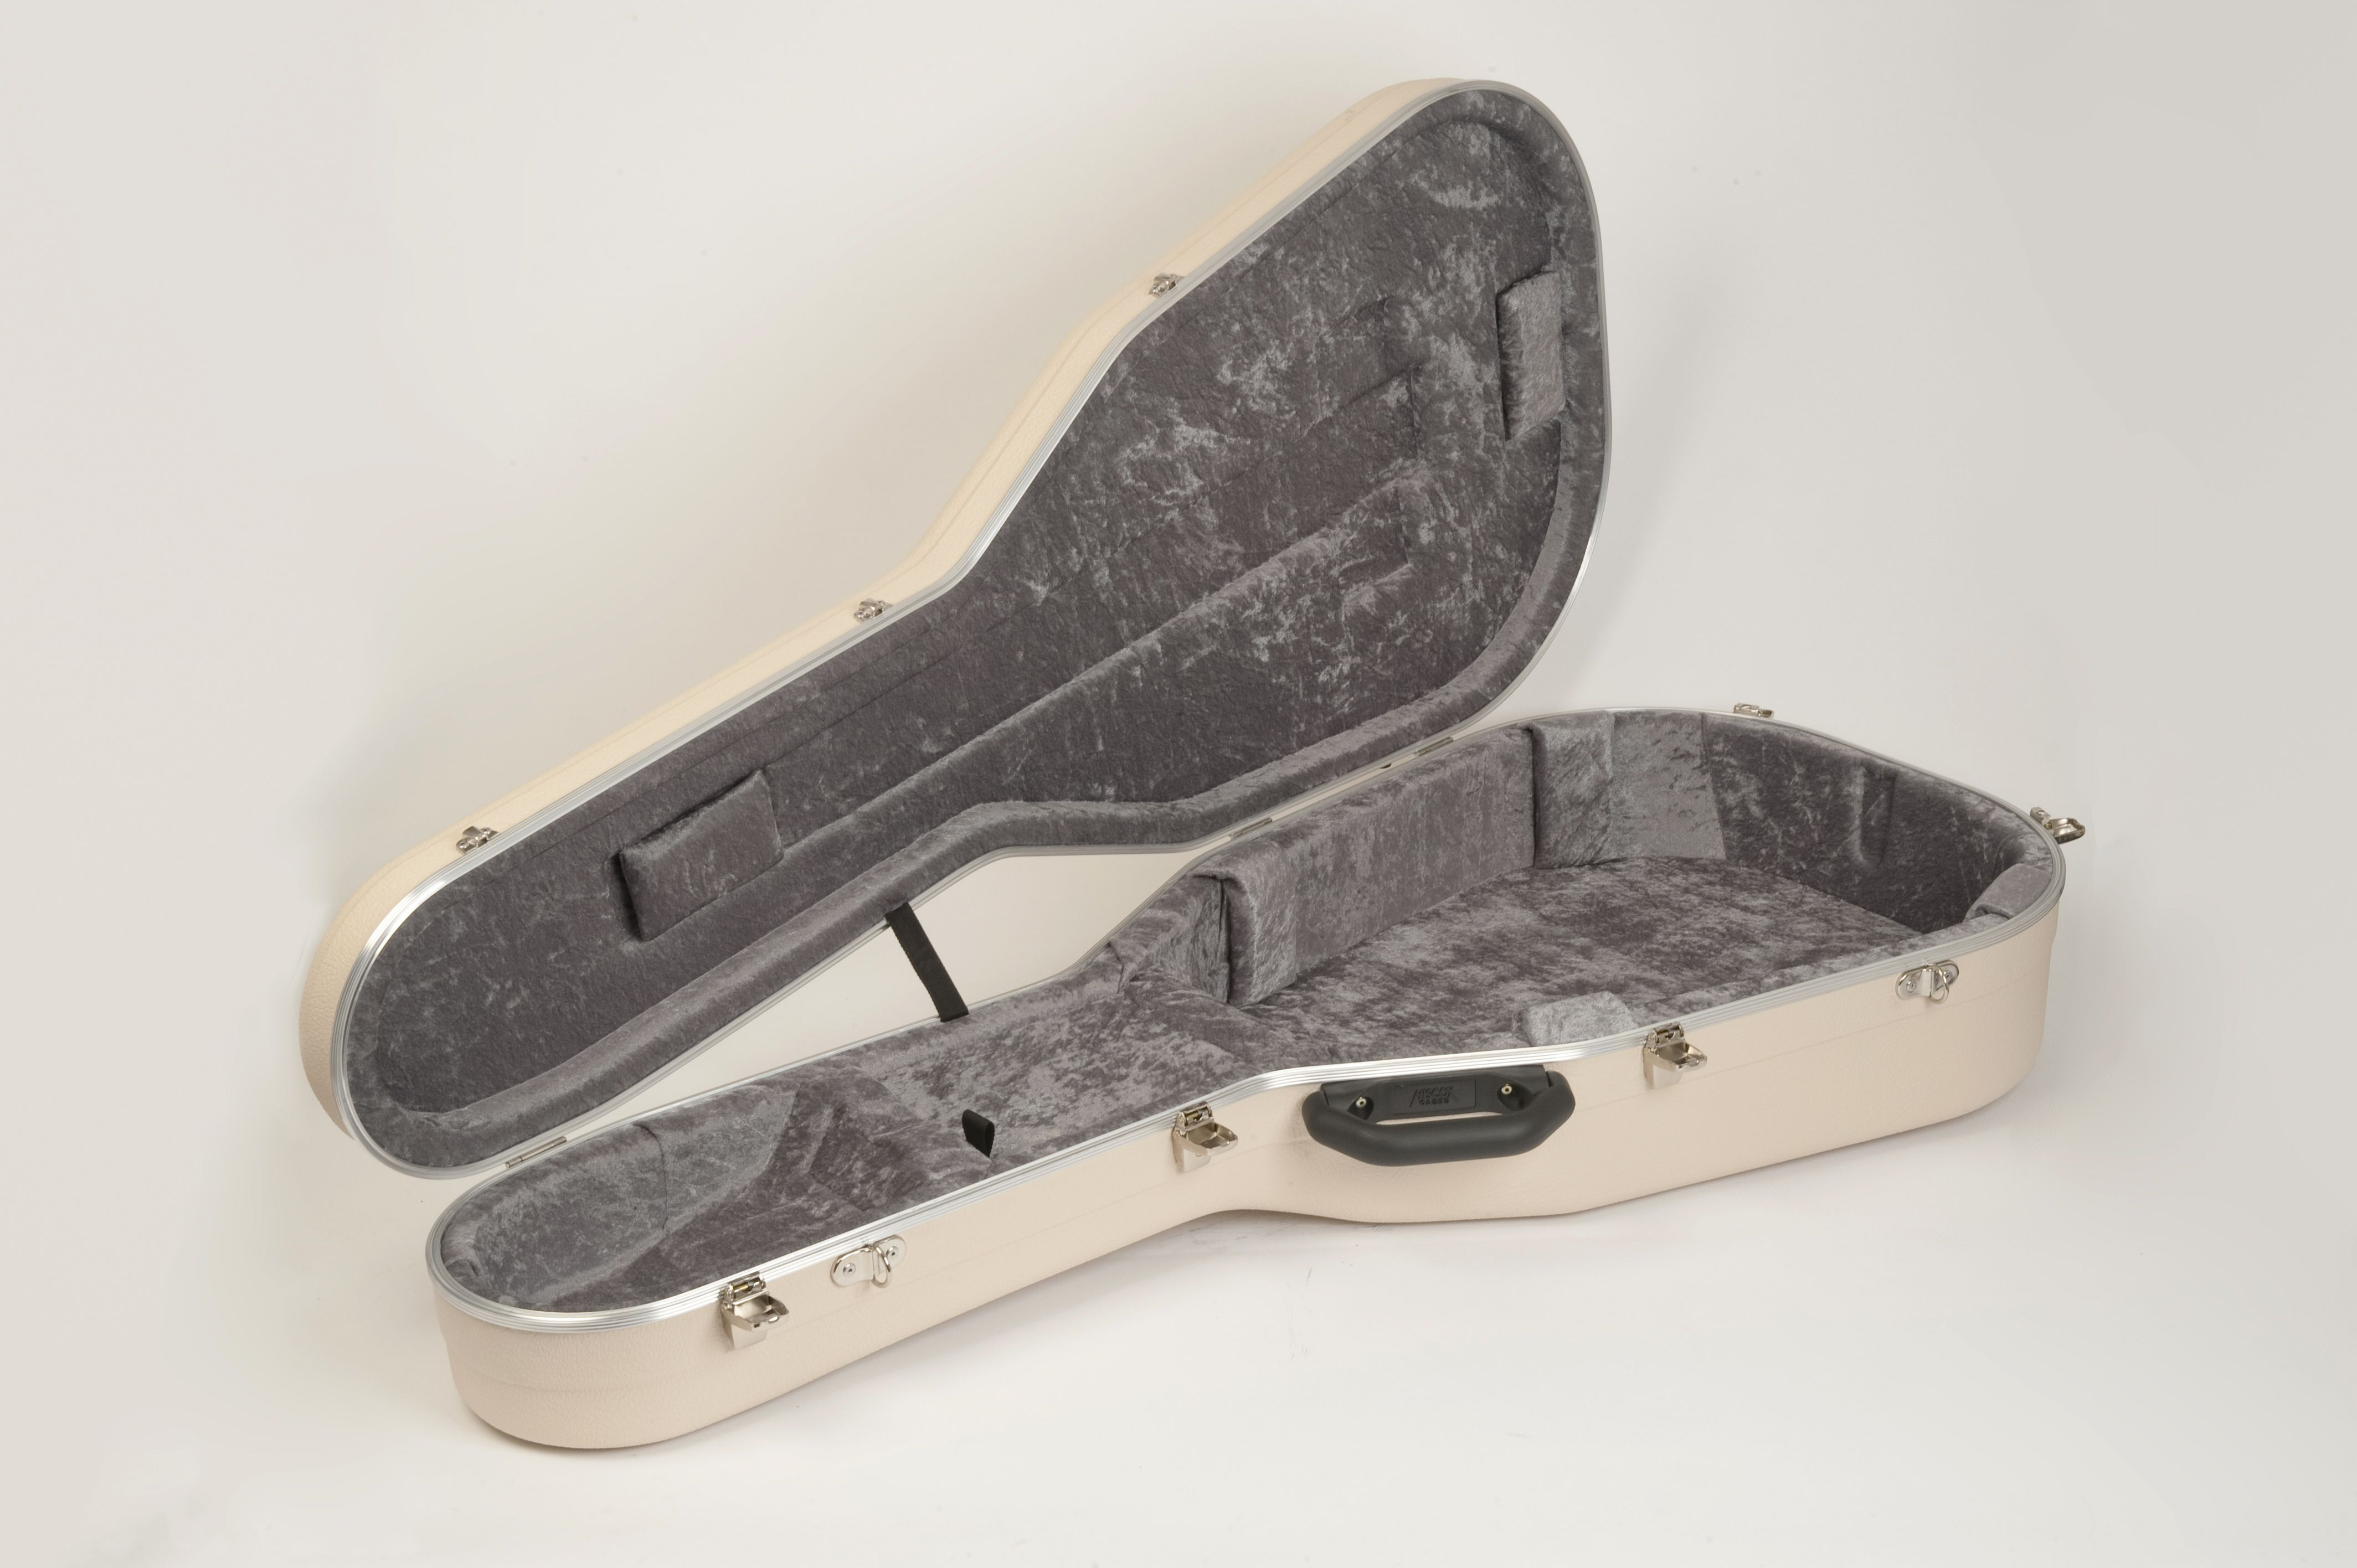 Pro Ii Dreadnaught Acoustic Guitar Case Hiscox Cases Hard Shell Case Protect Your Guitar Grey And Ivory Acoustic Guitar Case Guitar Case Case